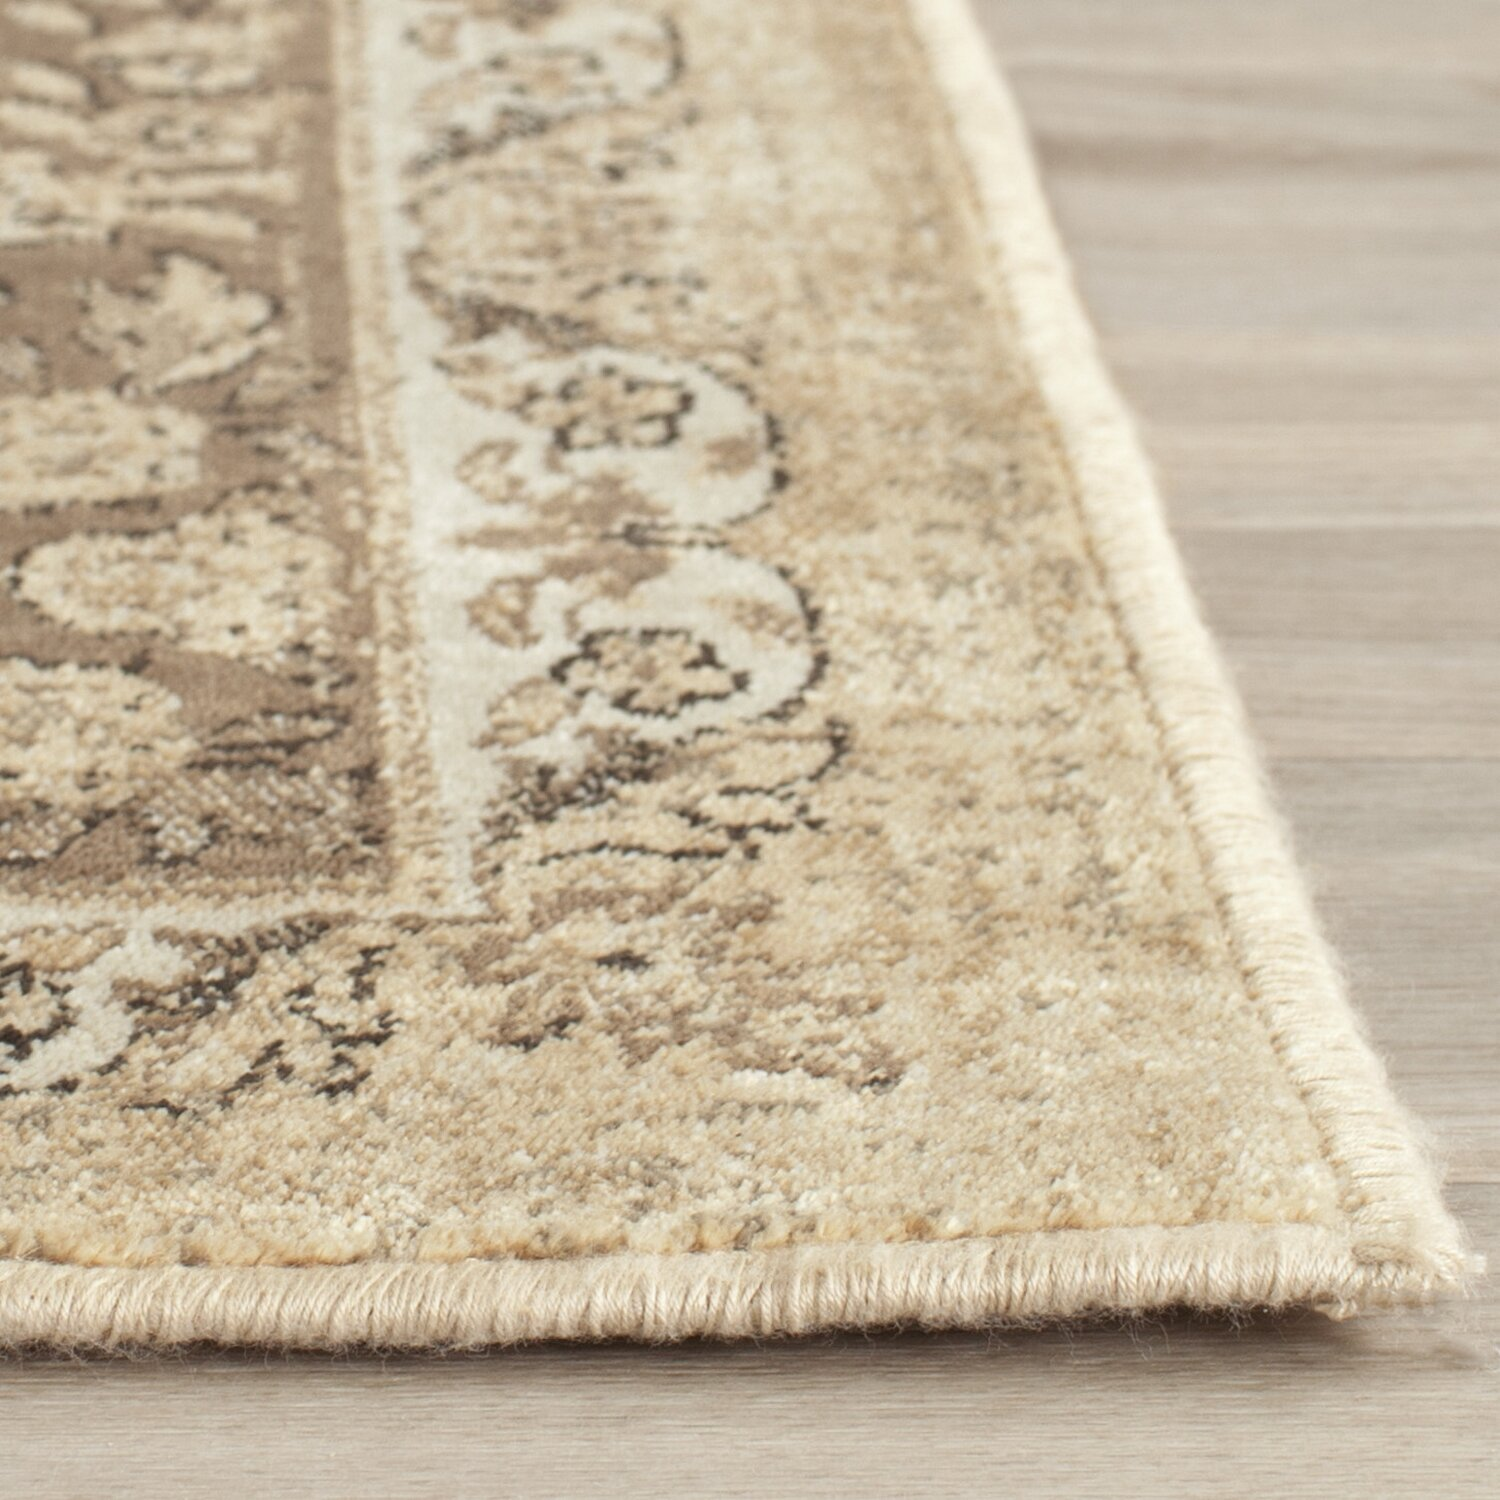 A Warm Rug Some Fall Primping Home Decor: Safavieh Vintage Warm Beige Area Rug & Reviews